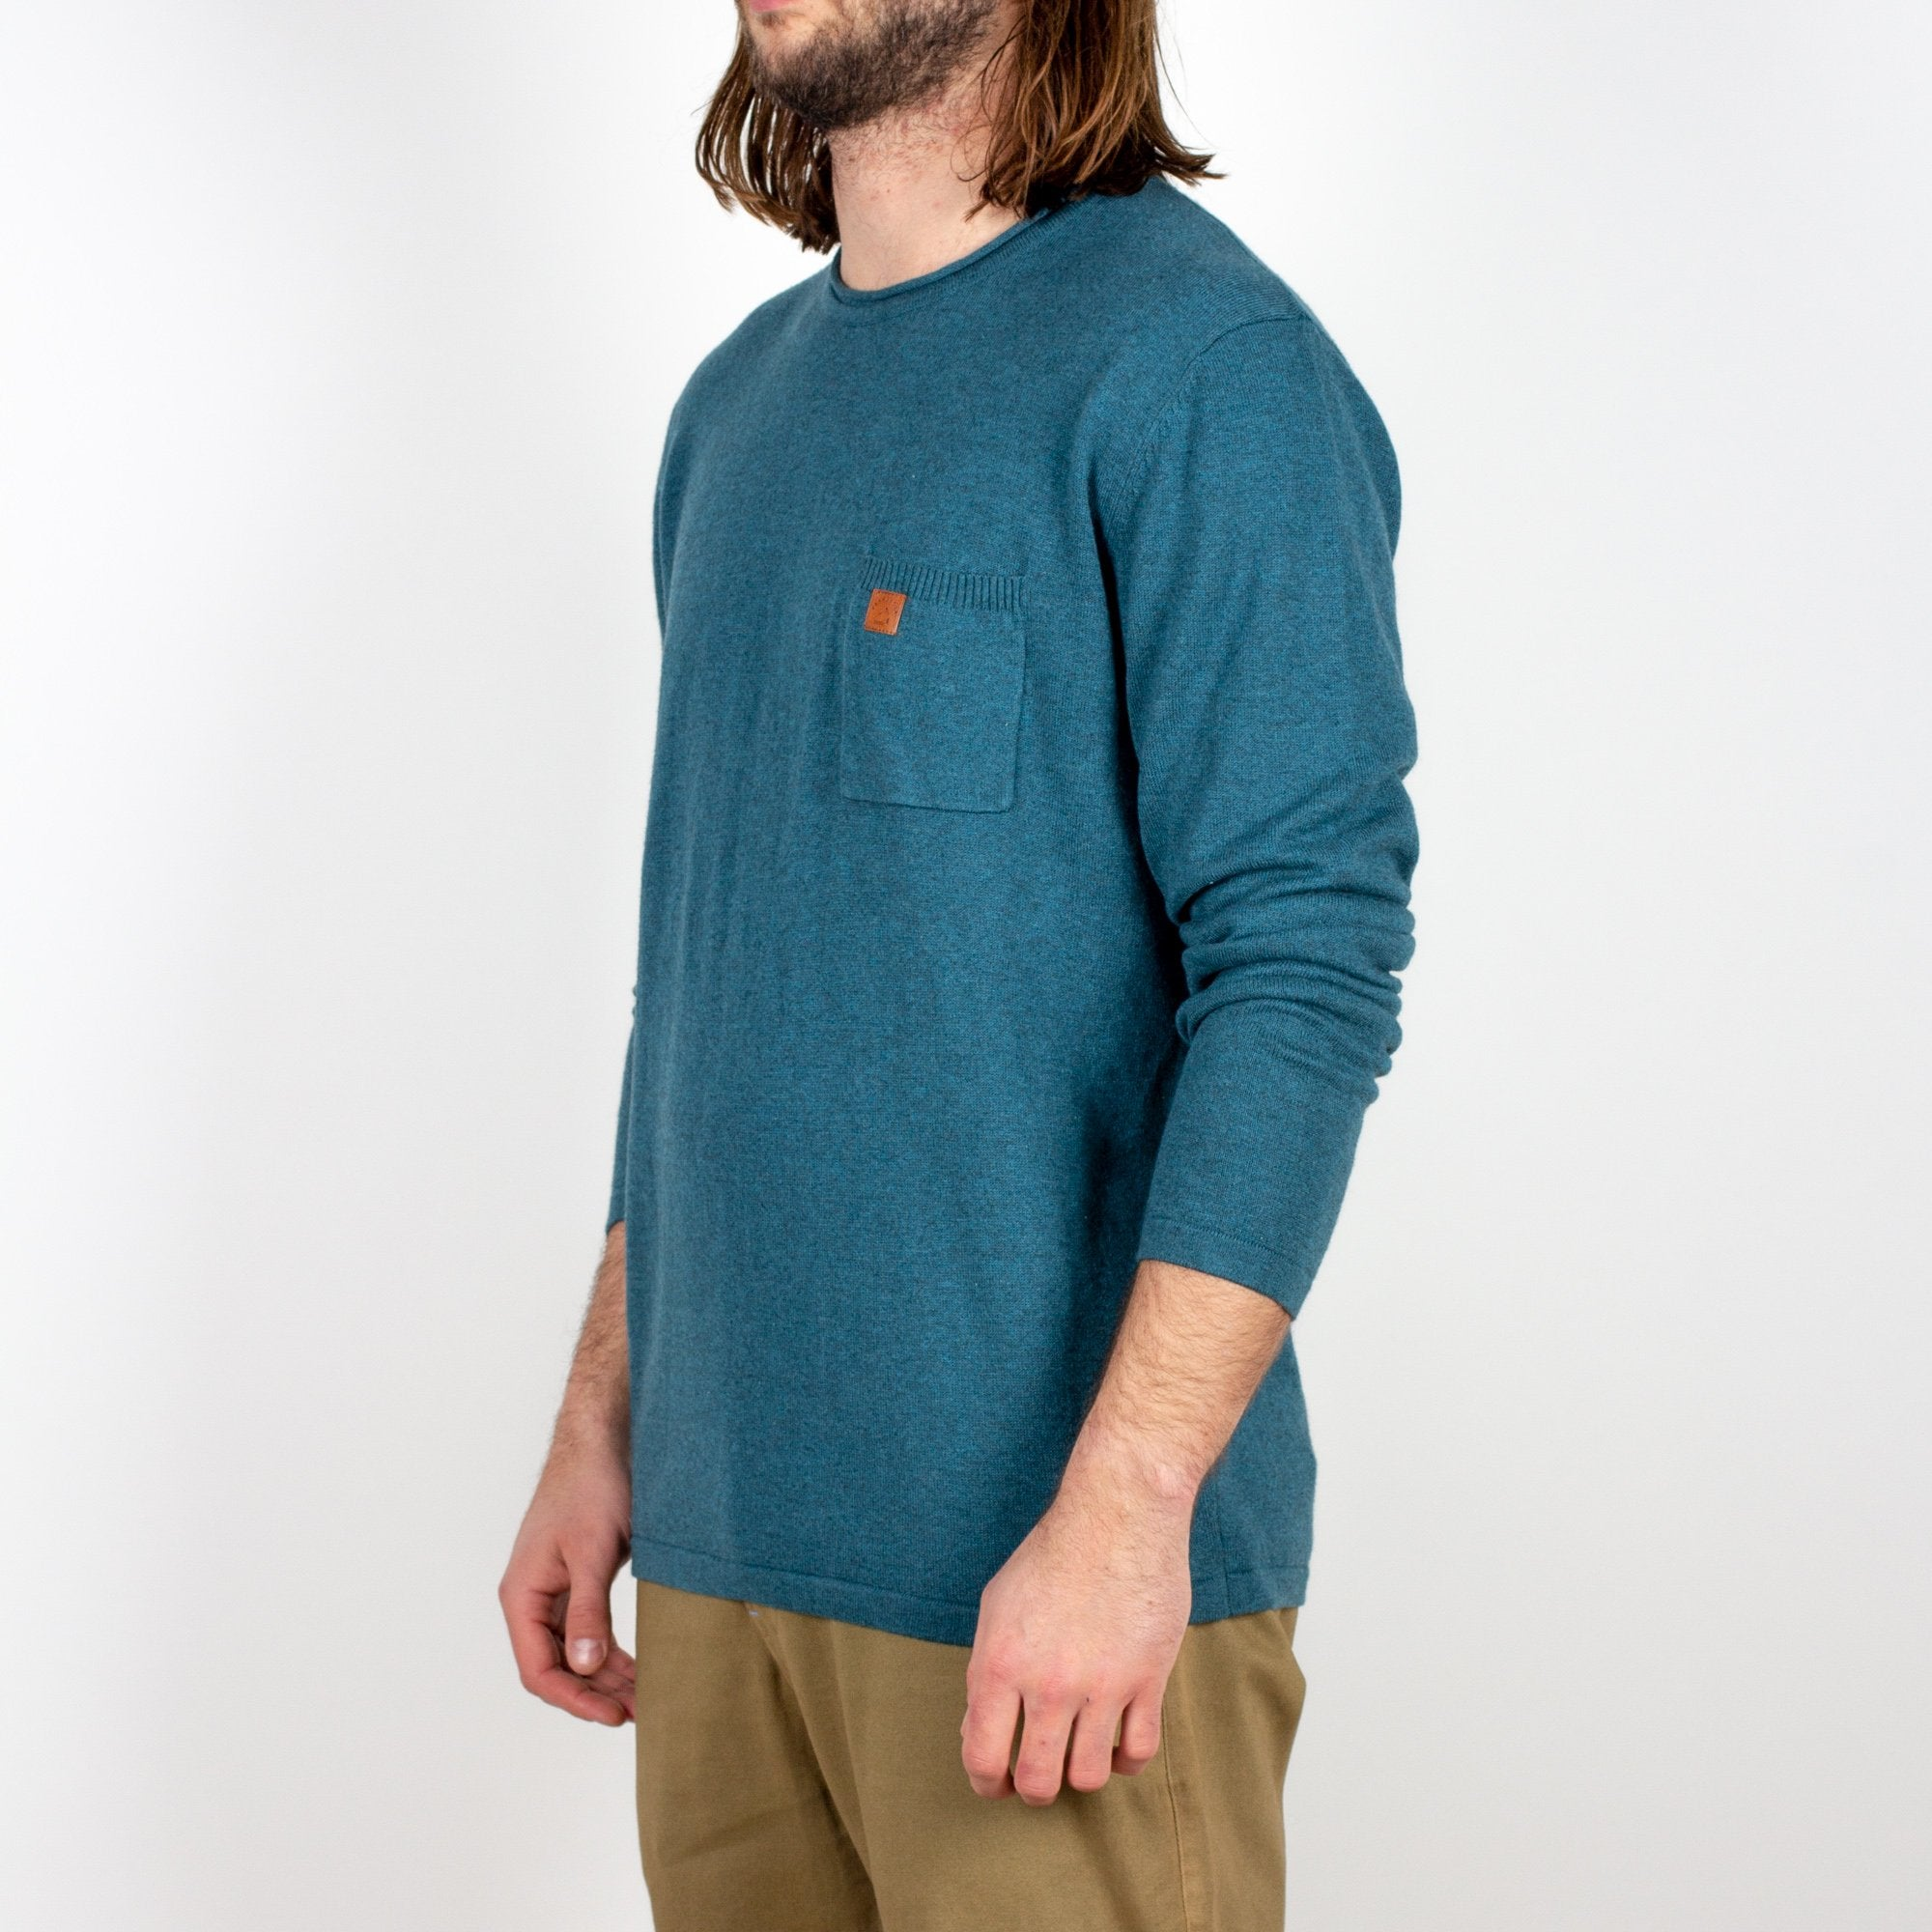 Himalayas Knitted Sweater - Teal image 2